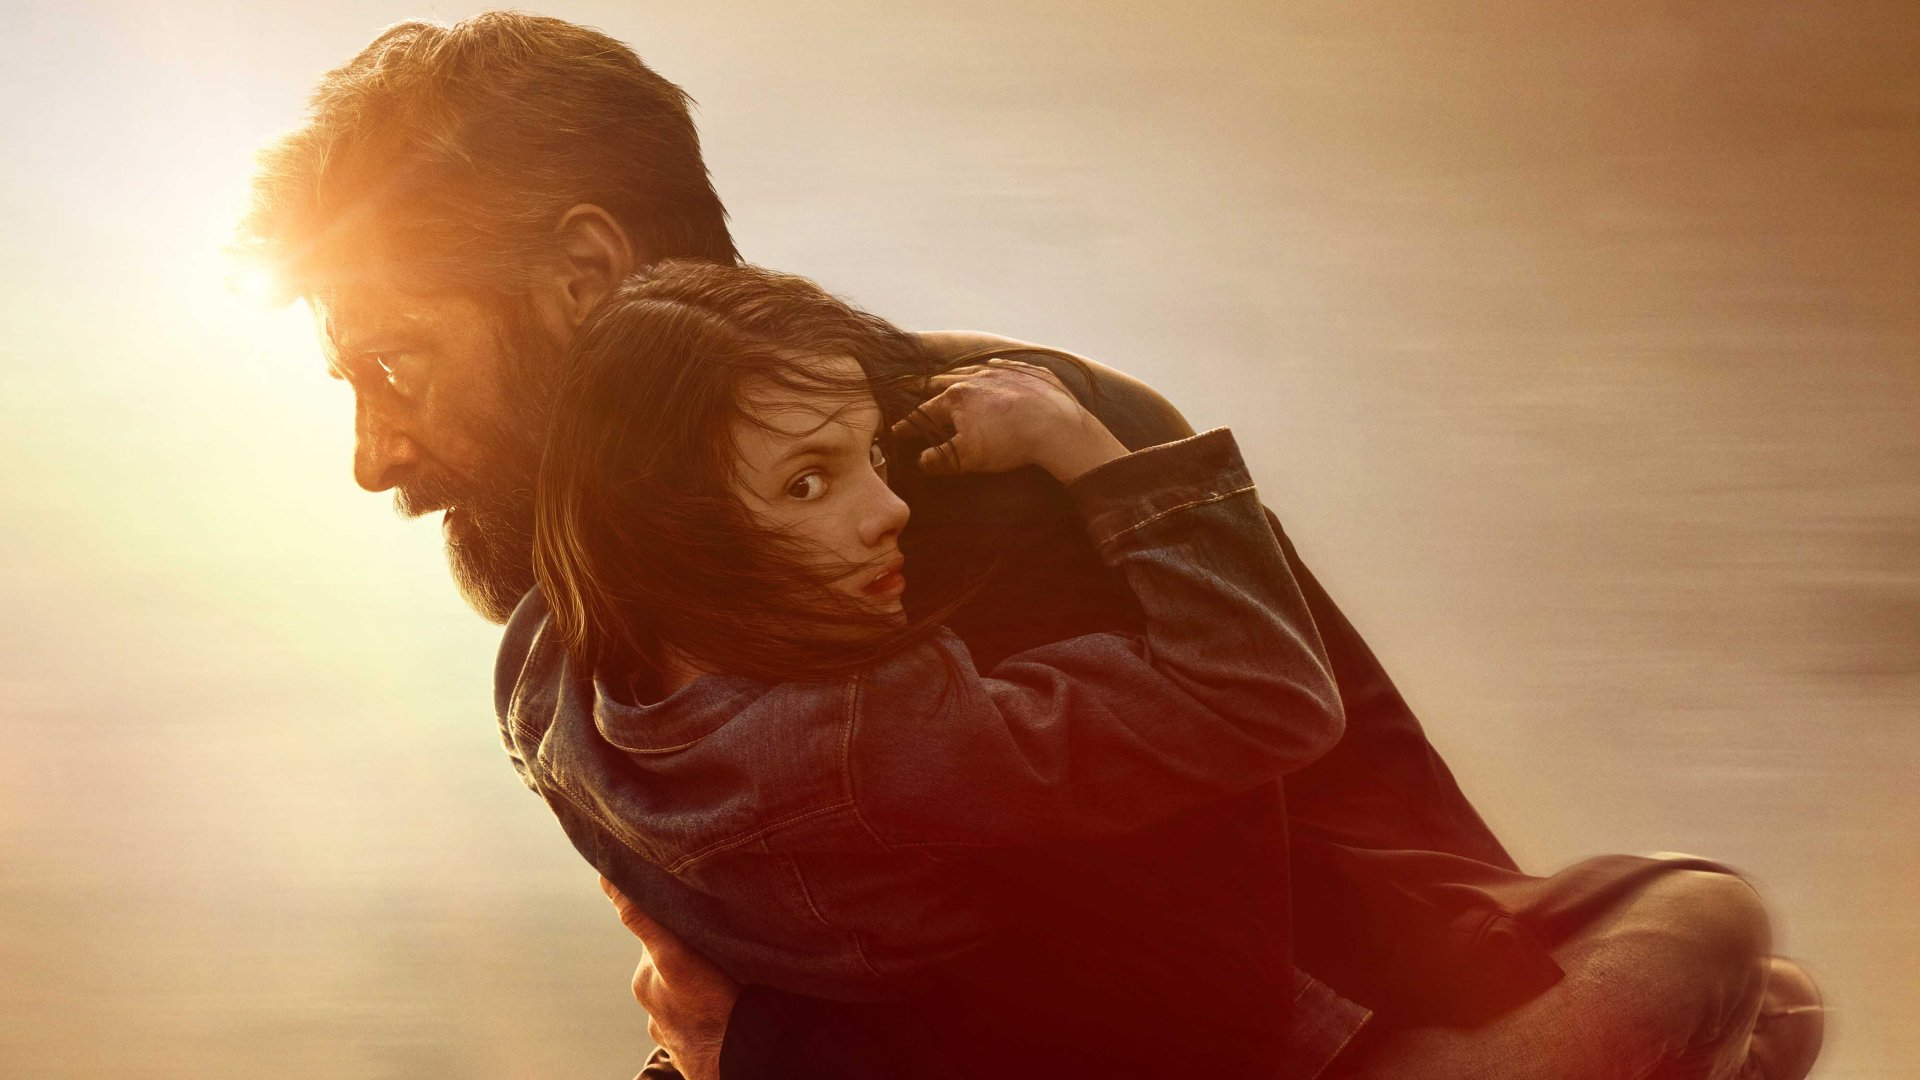 Movie - Logan  Dafne Keen Hugh Jackman Laura Kinney Logan (Movie) Wolverine Marvel Comics Wallpaper